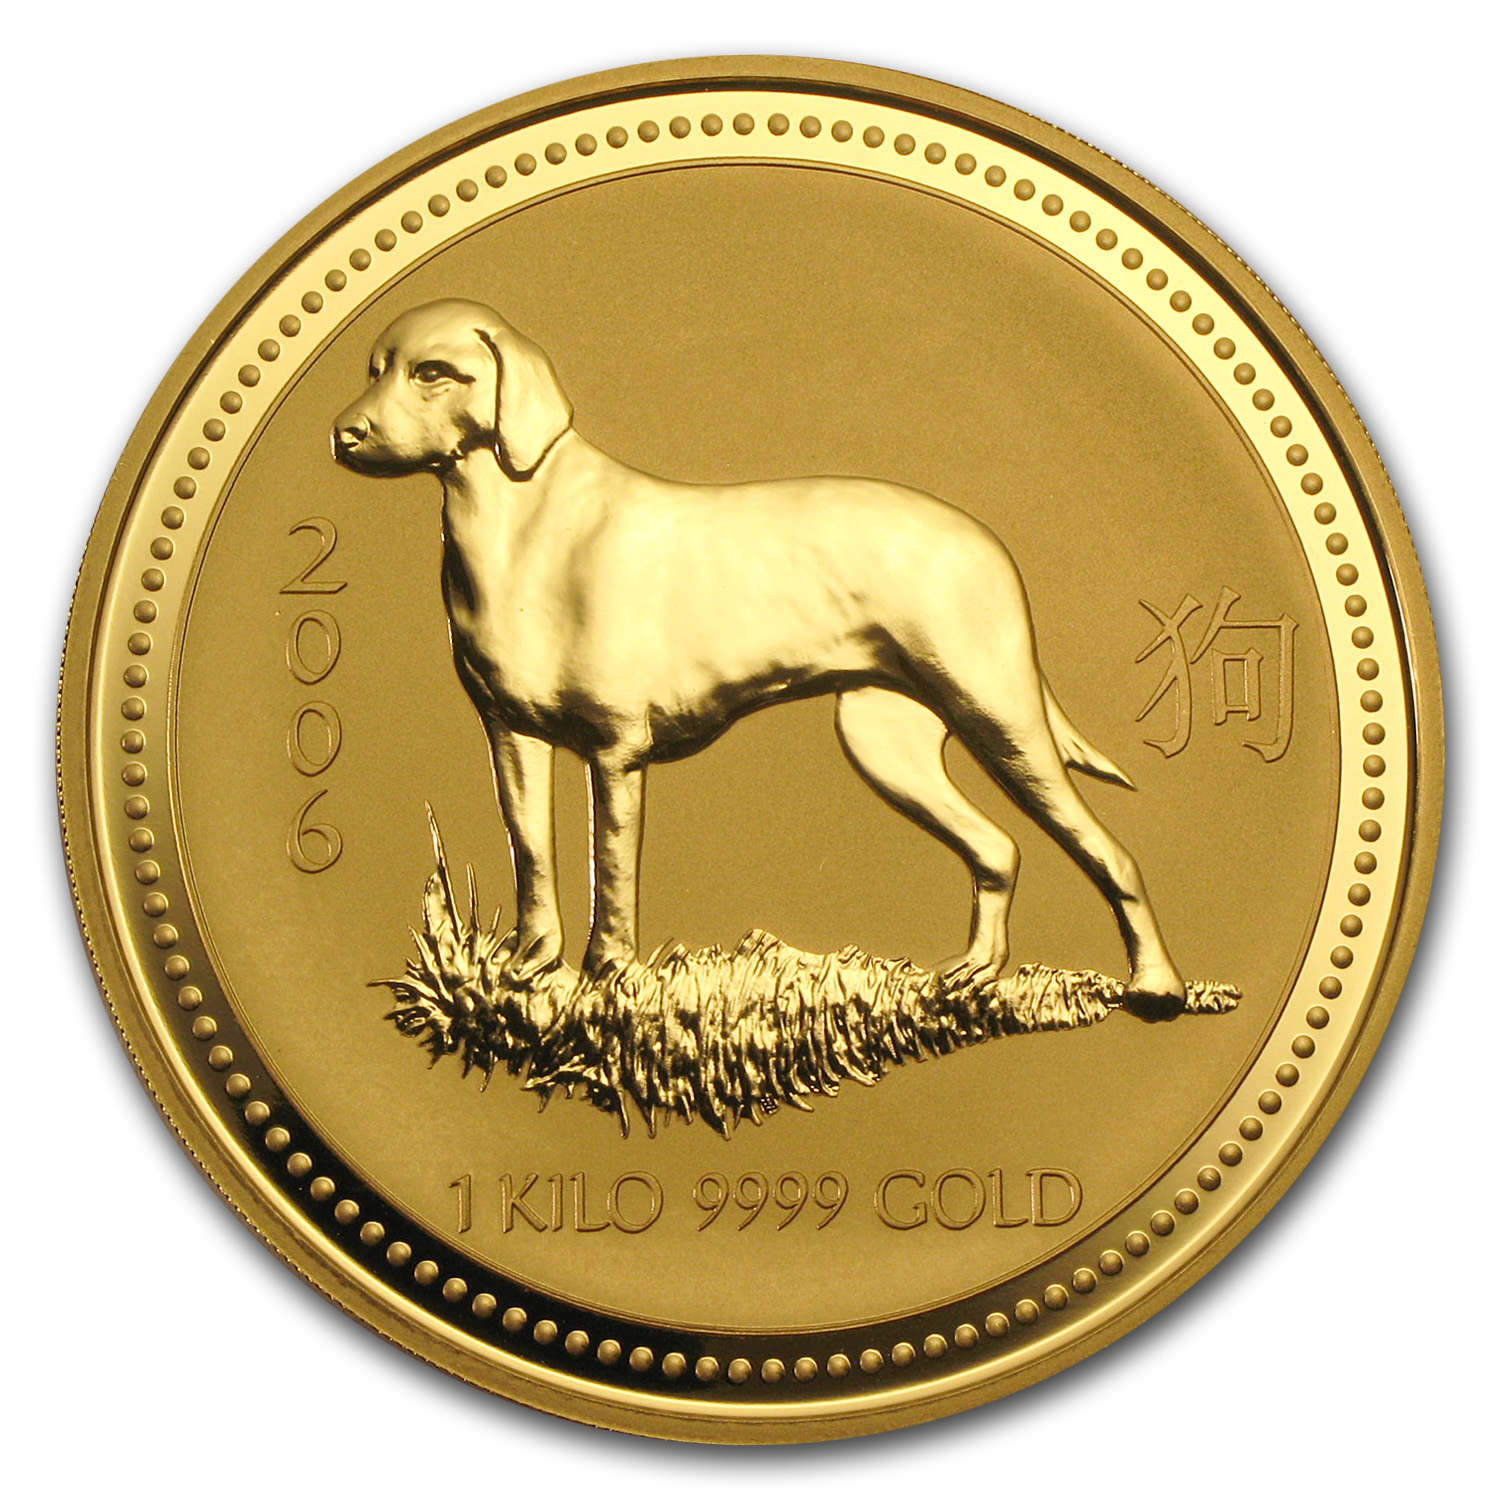 2006 1 kilo (32.15 oz) Gold Year of the Dog Lunar (Series I)